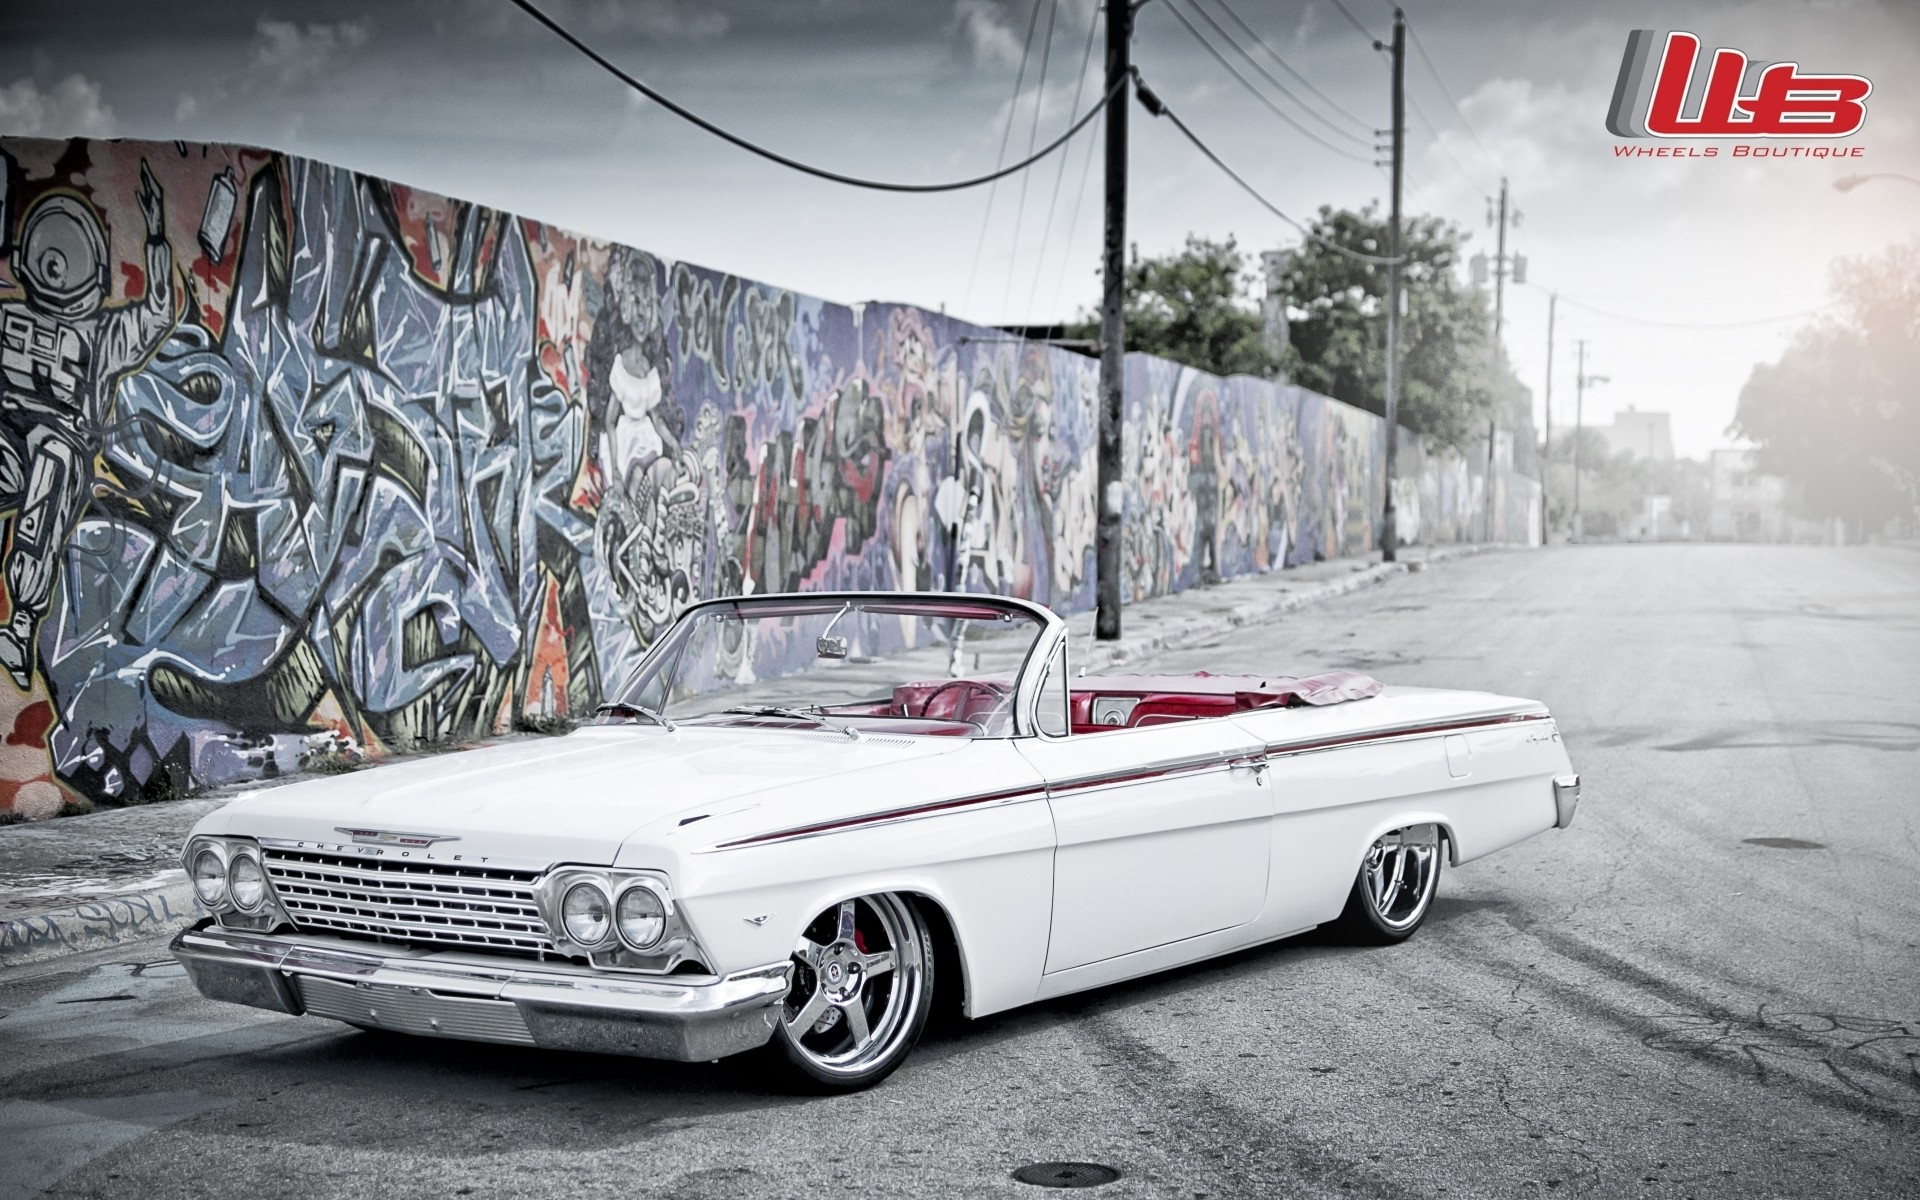 1920x1200 Vehicles - Lowrider Chevrolet Wallpaper